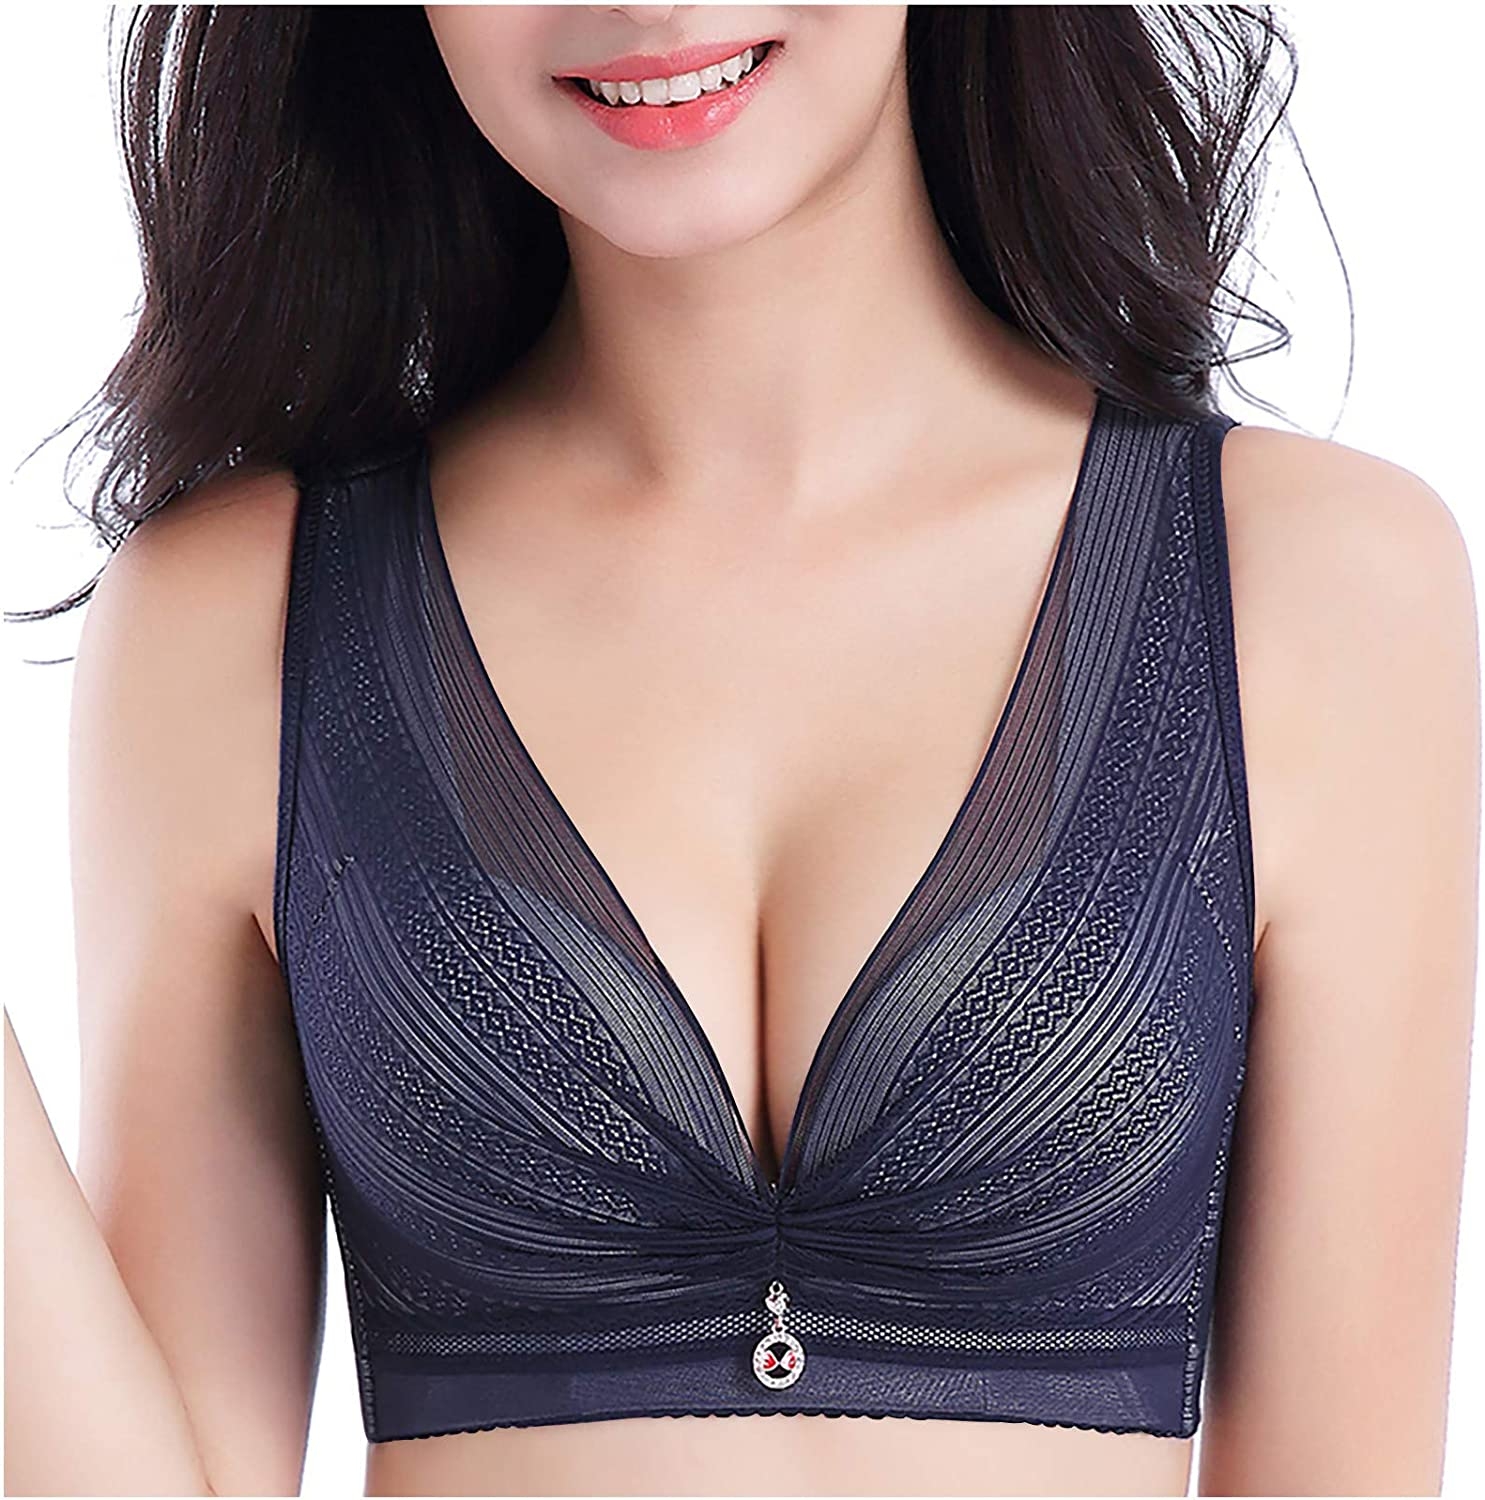 Womens Sexy Bras Mesh Splicing Stretchy Plus Size Sports Bralette Solid Color Underwear Yoga Hollow Out Bra Intimates